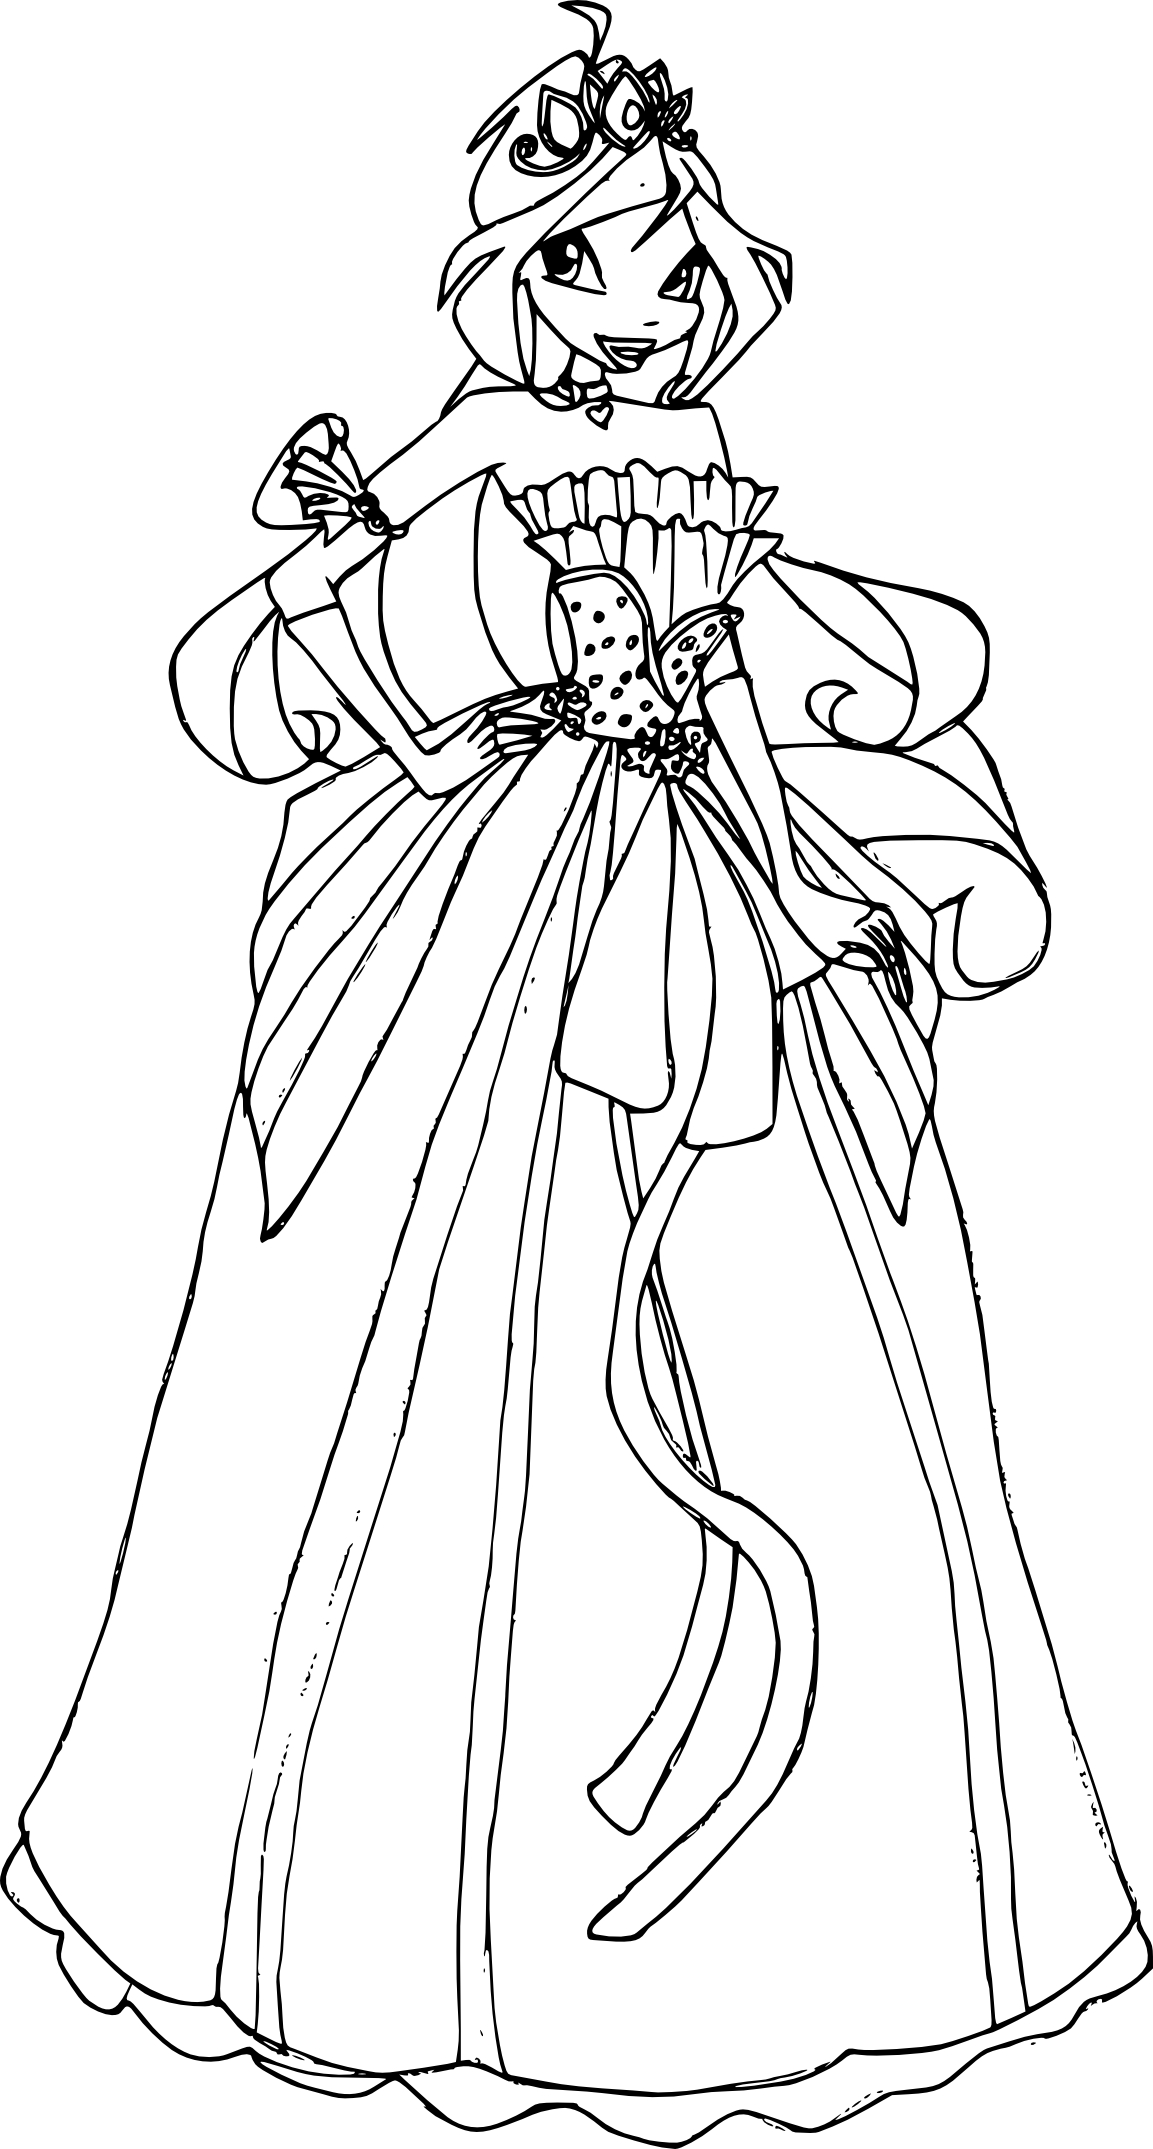 Coloriage Bloom princesse